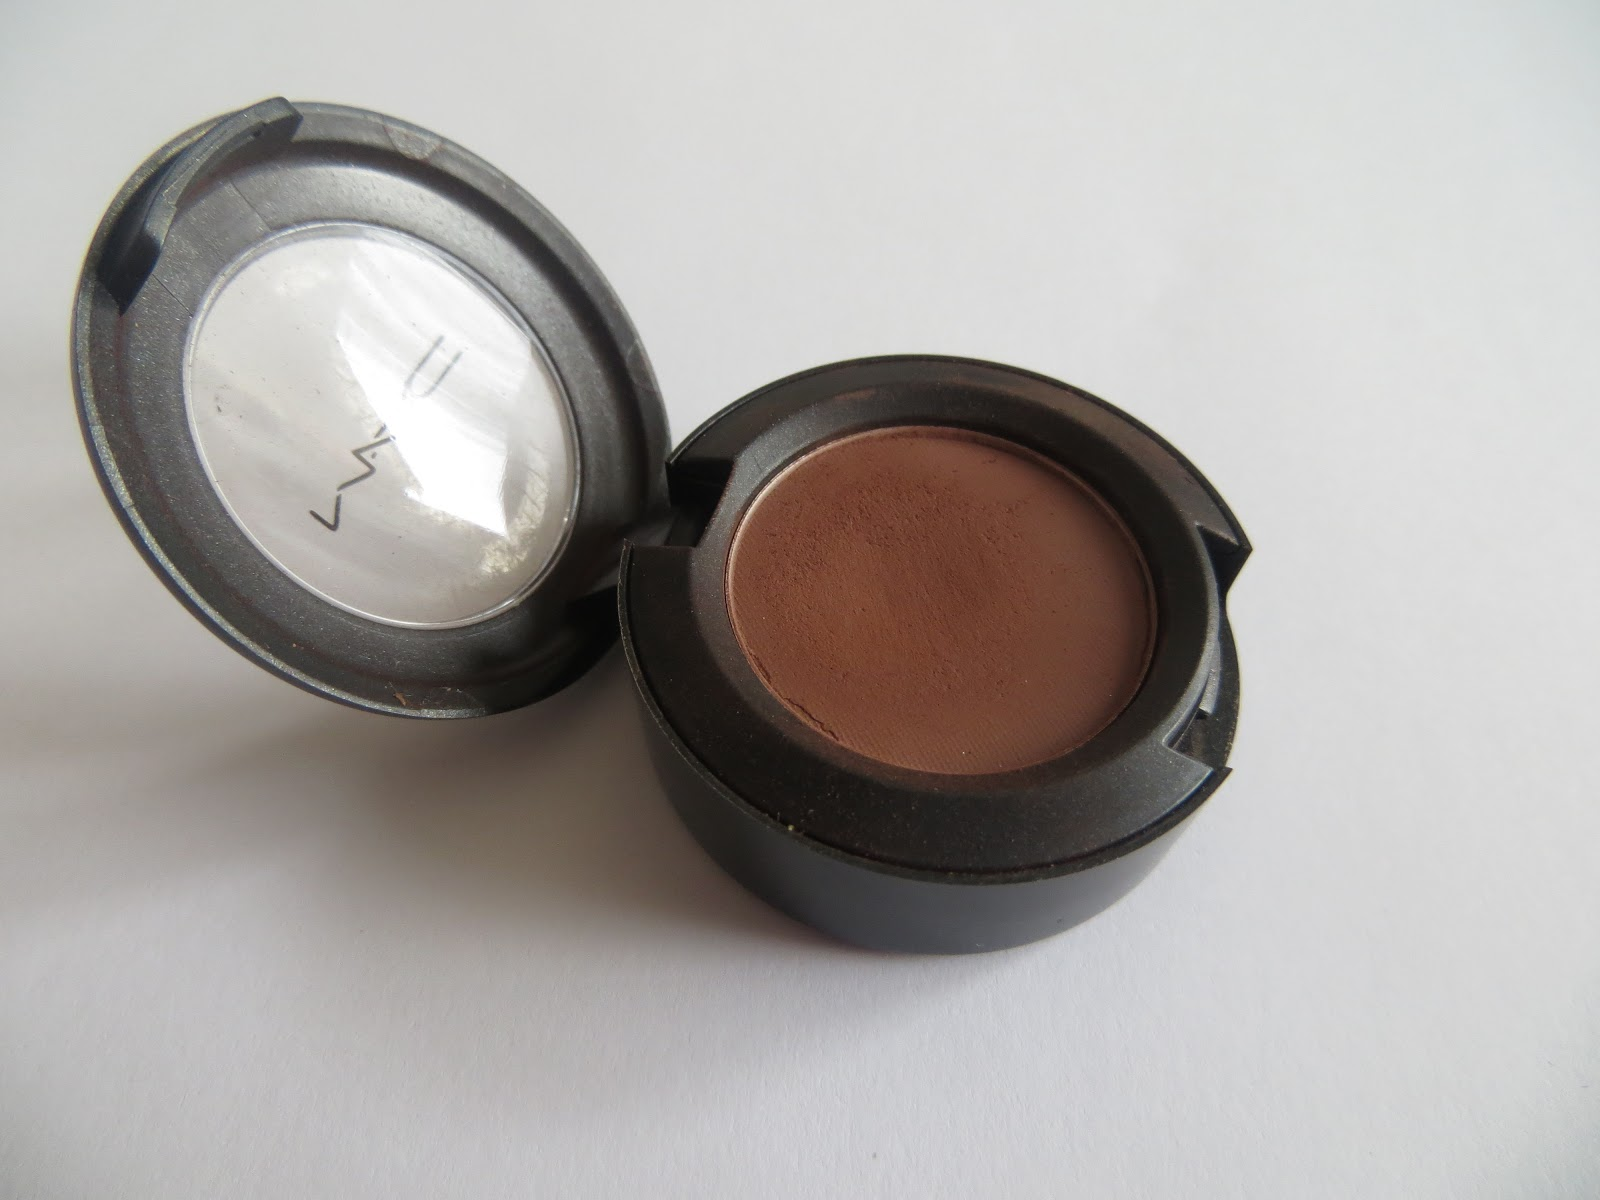 mac swiss chocolate eyeshadow - photo #1